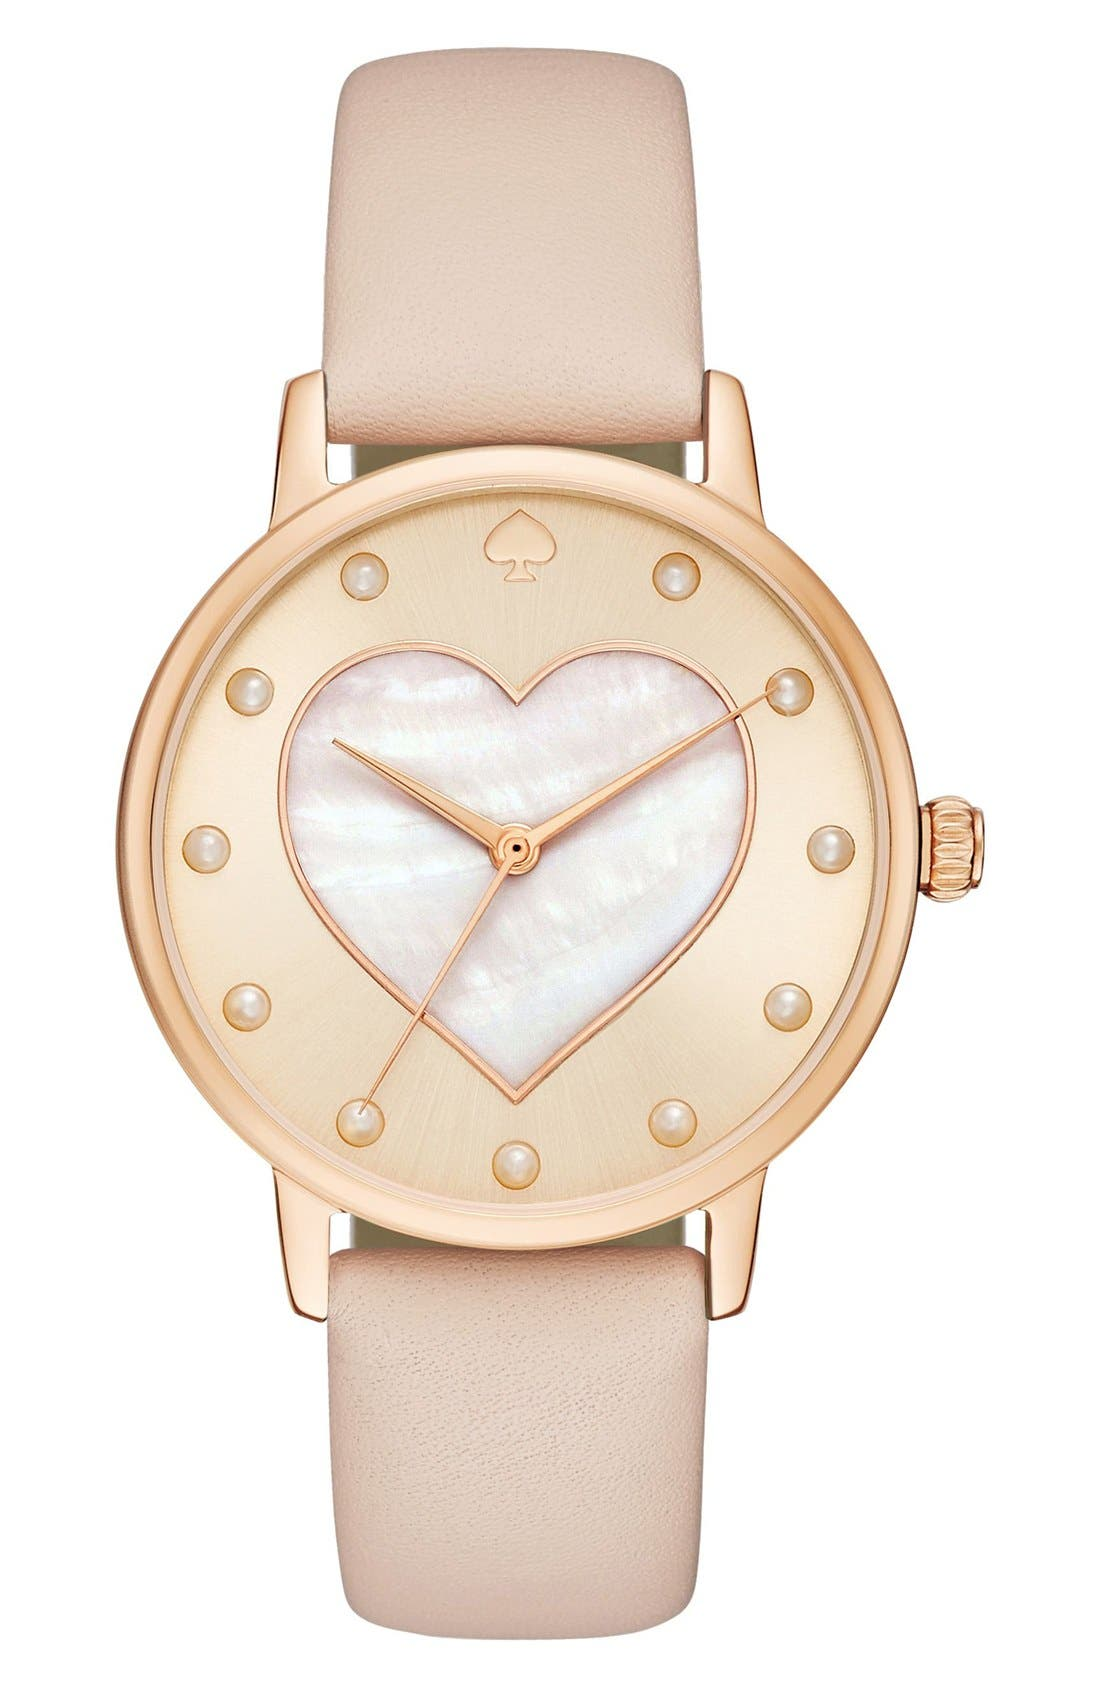 Main Image - kate spade new york metro mother-of-pearl heart watch, 34mm